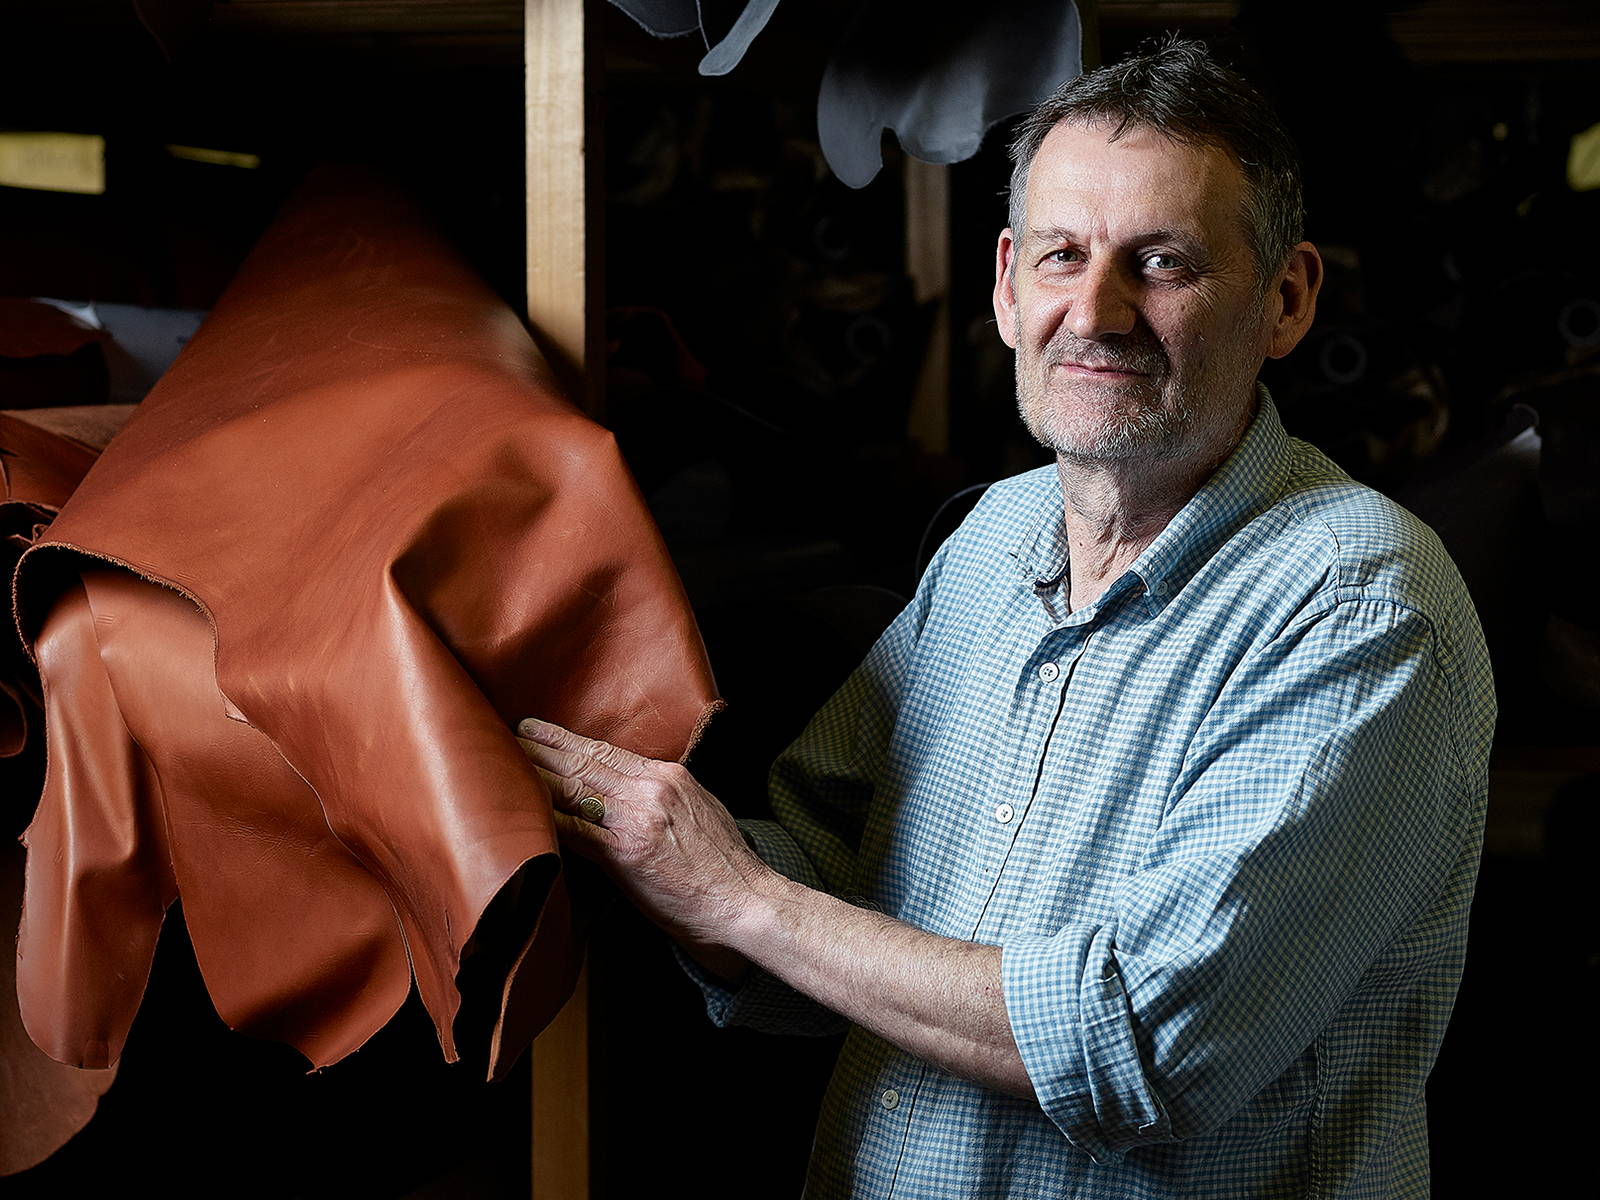 Leather Buying An Interview